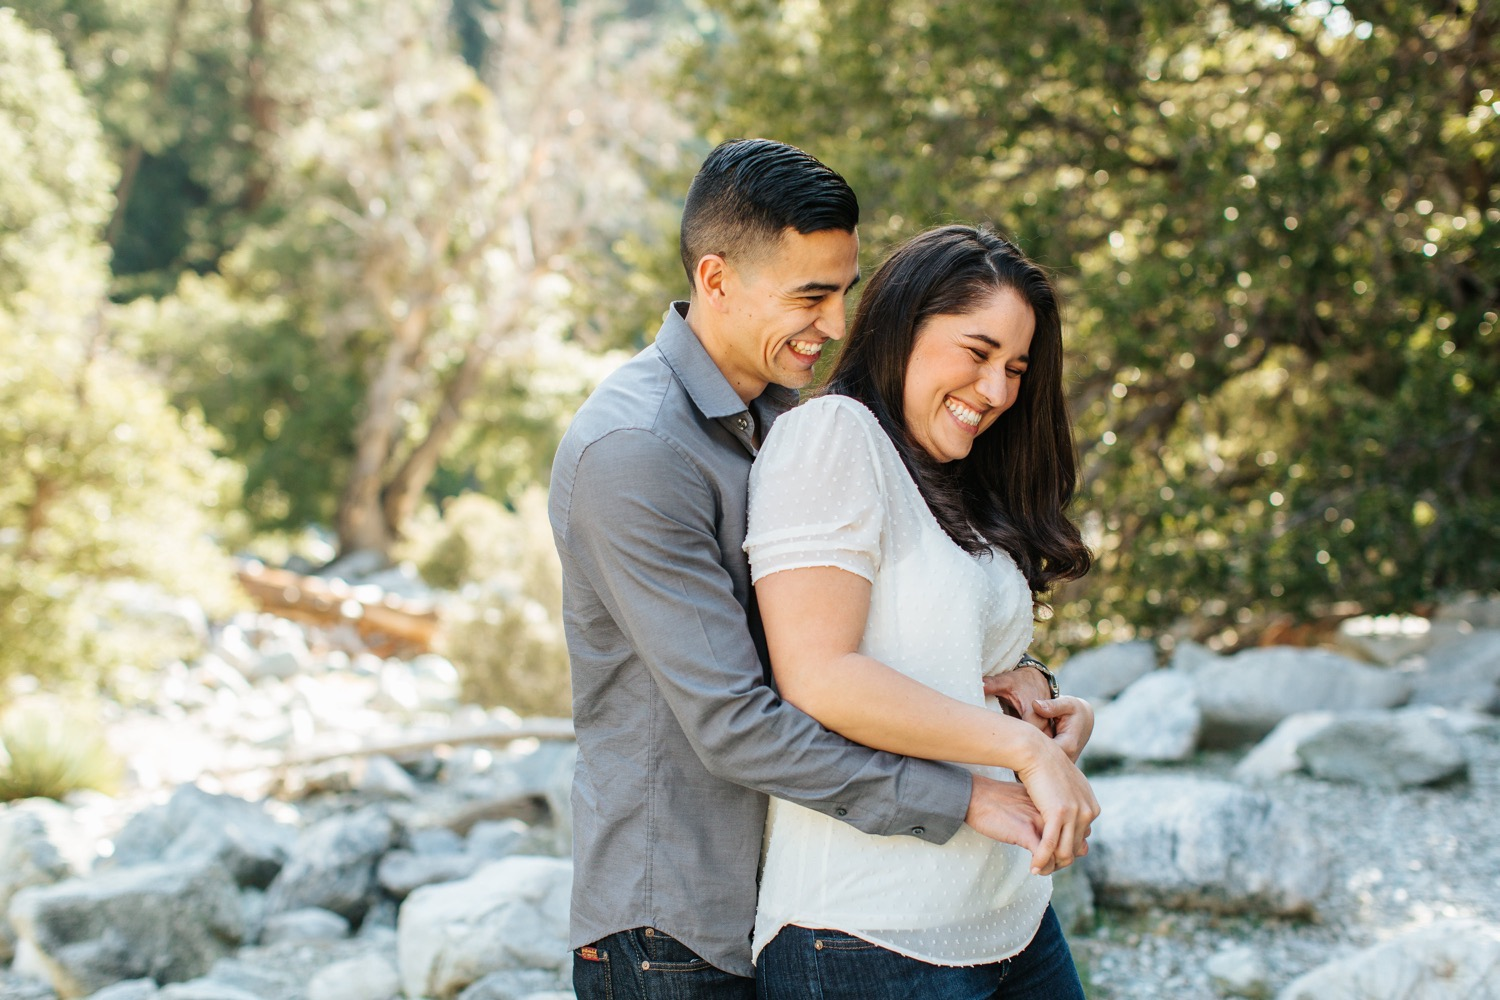 Southern California Engagement Session - https://brittneyhannonphotography.com